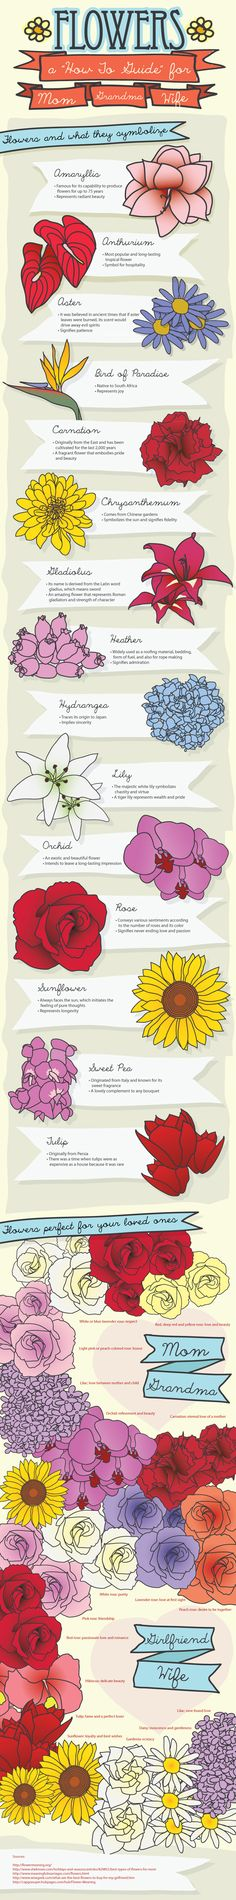 Flowers - Choosing The Right Flower For The Right Occasion.